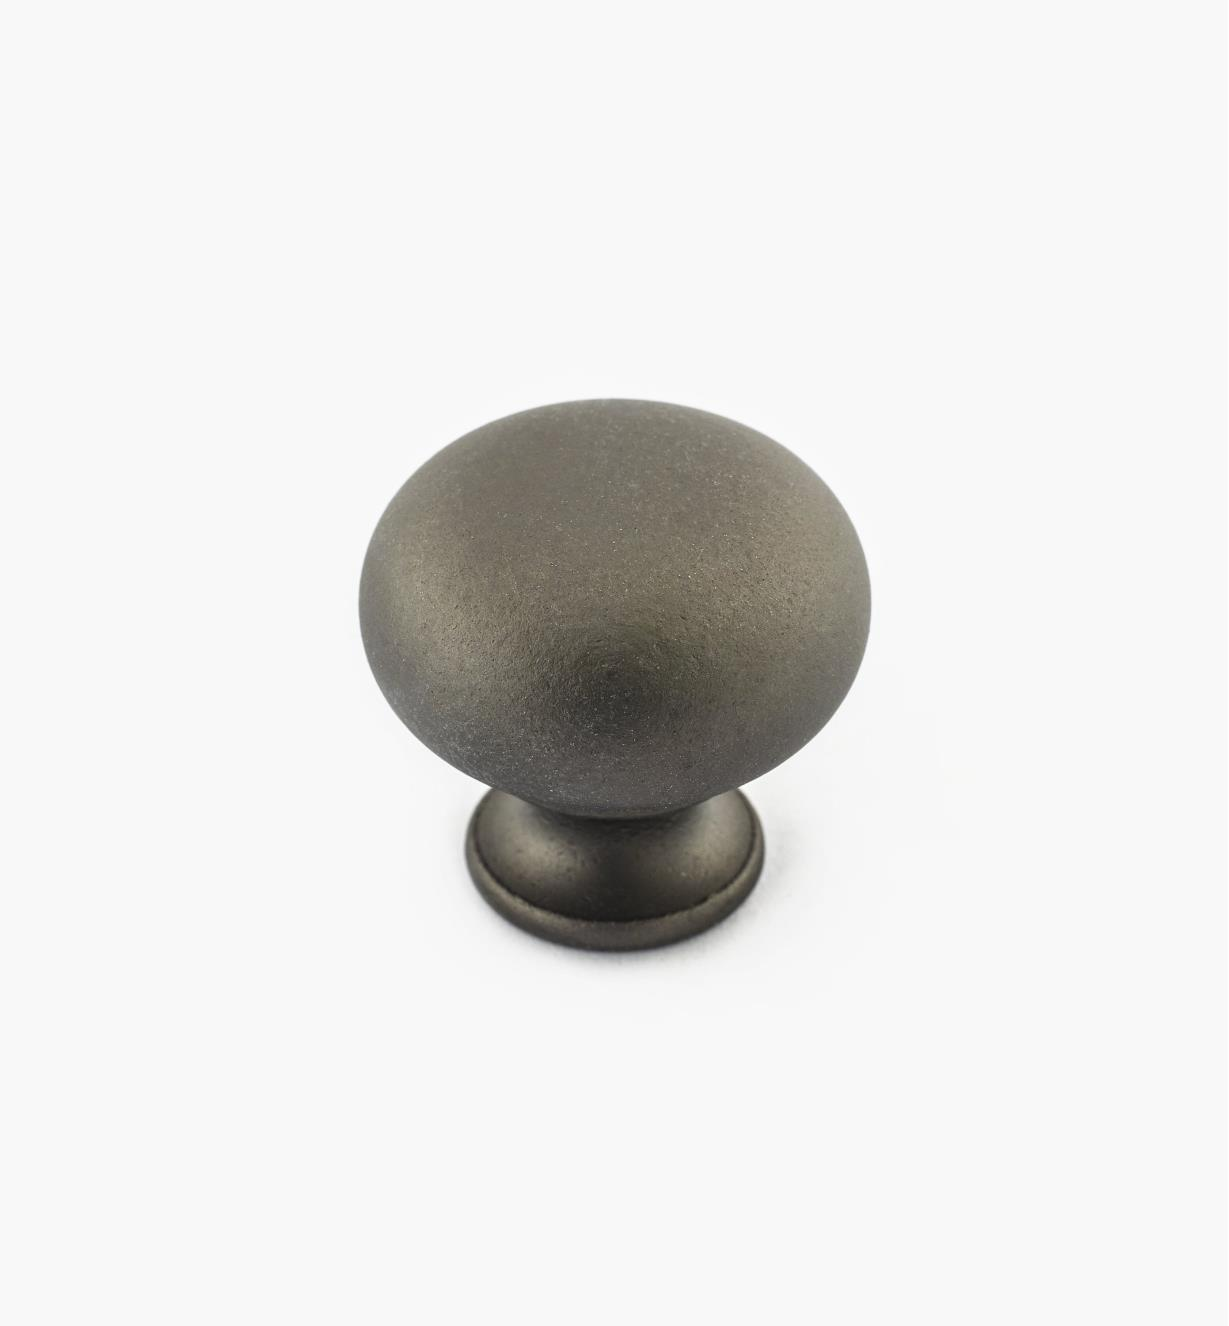 "02W2601 - Pewter Suite - 1 3/16"" x 1 1/8"" Cast Brass Dome Knob"